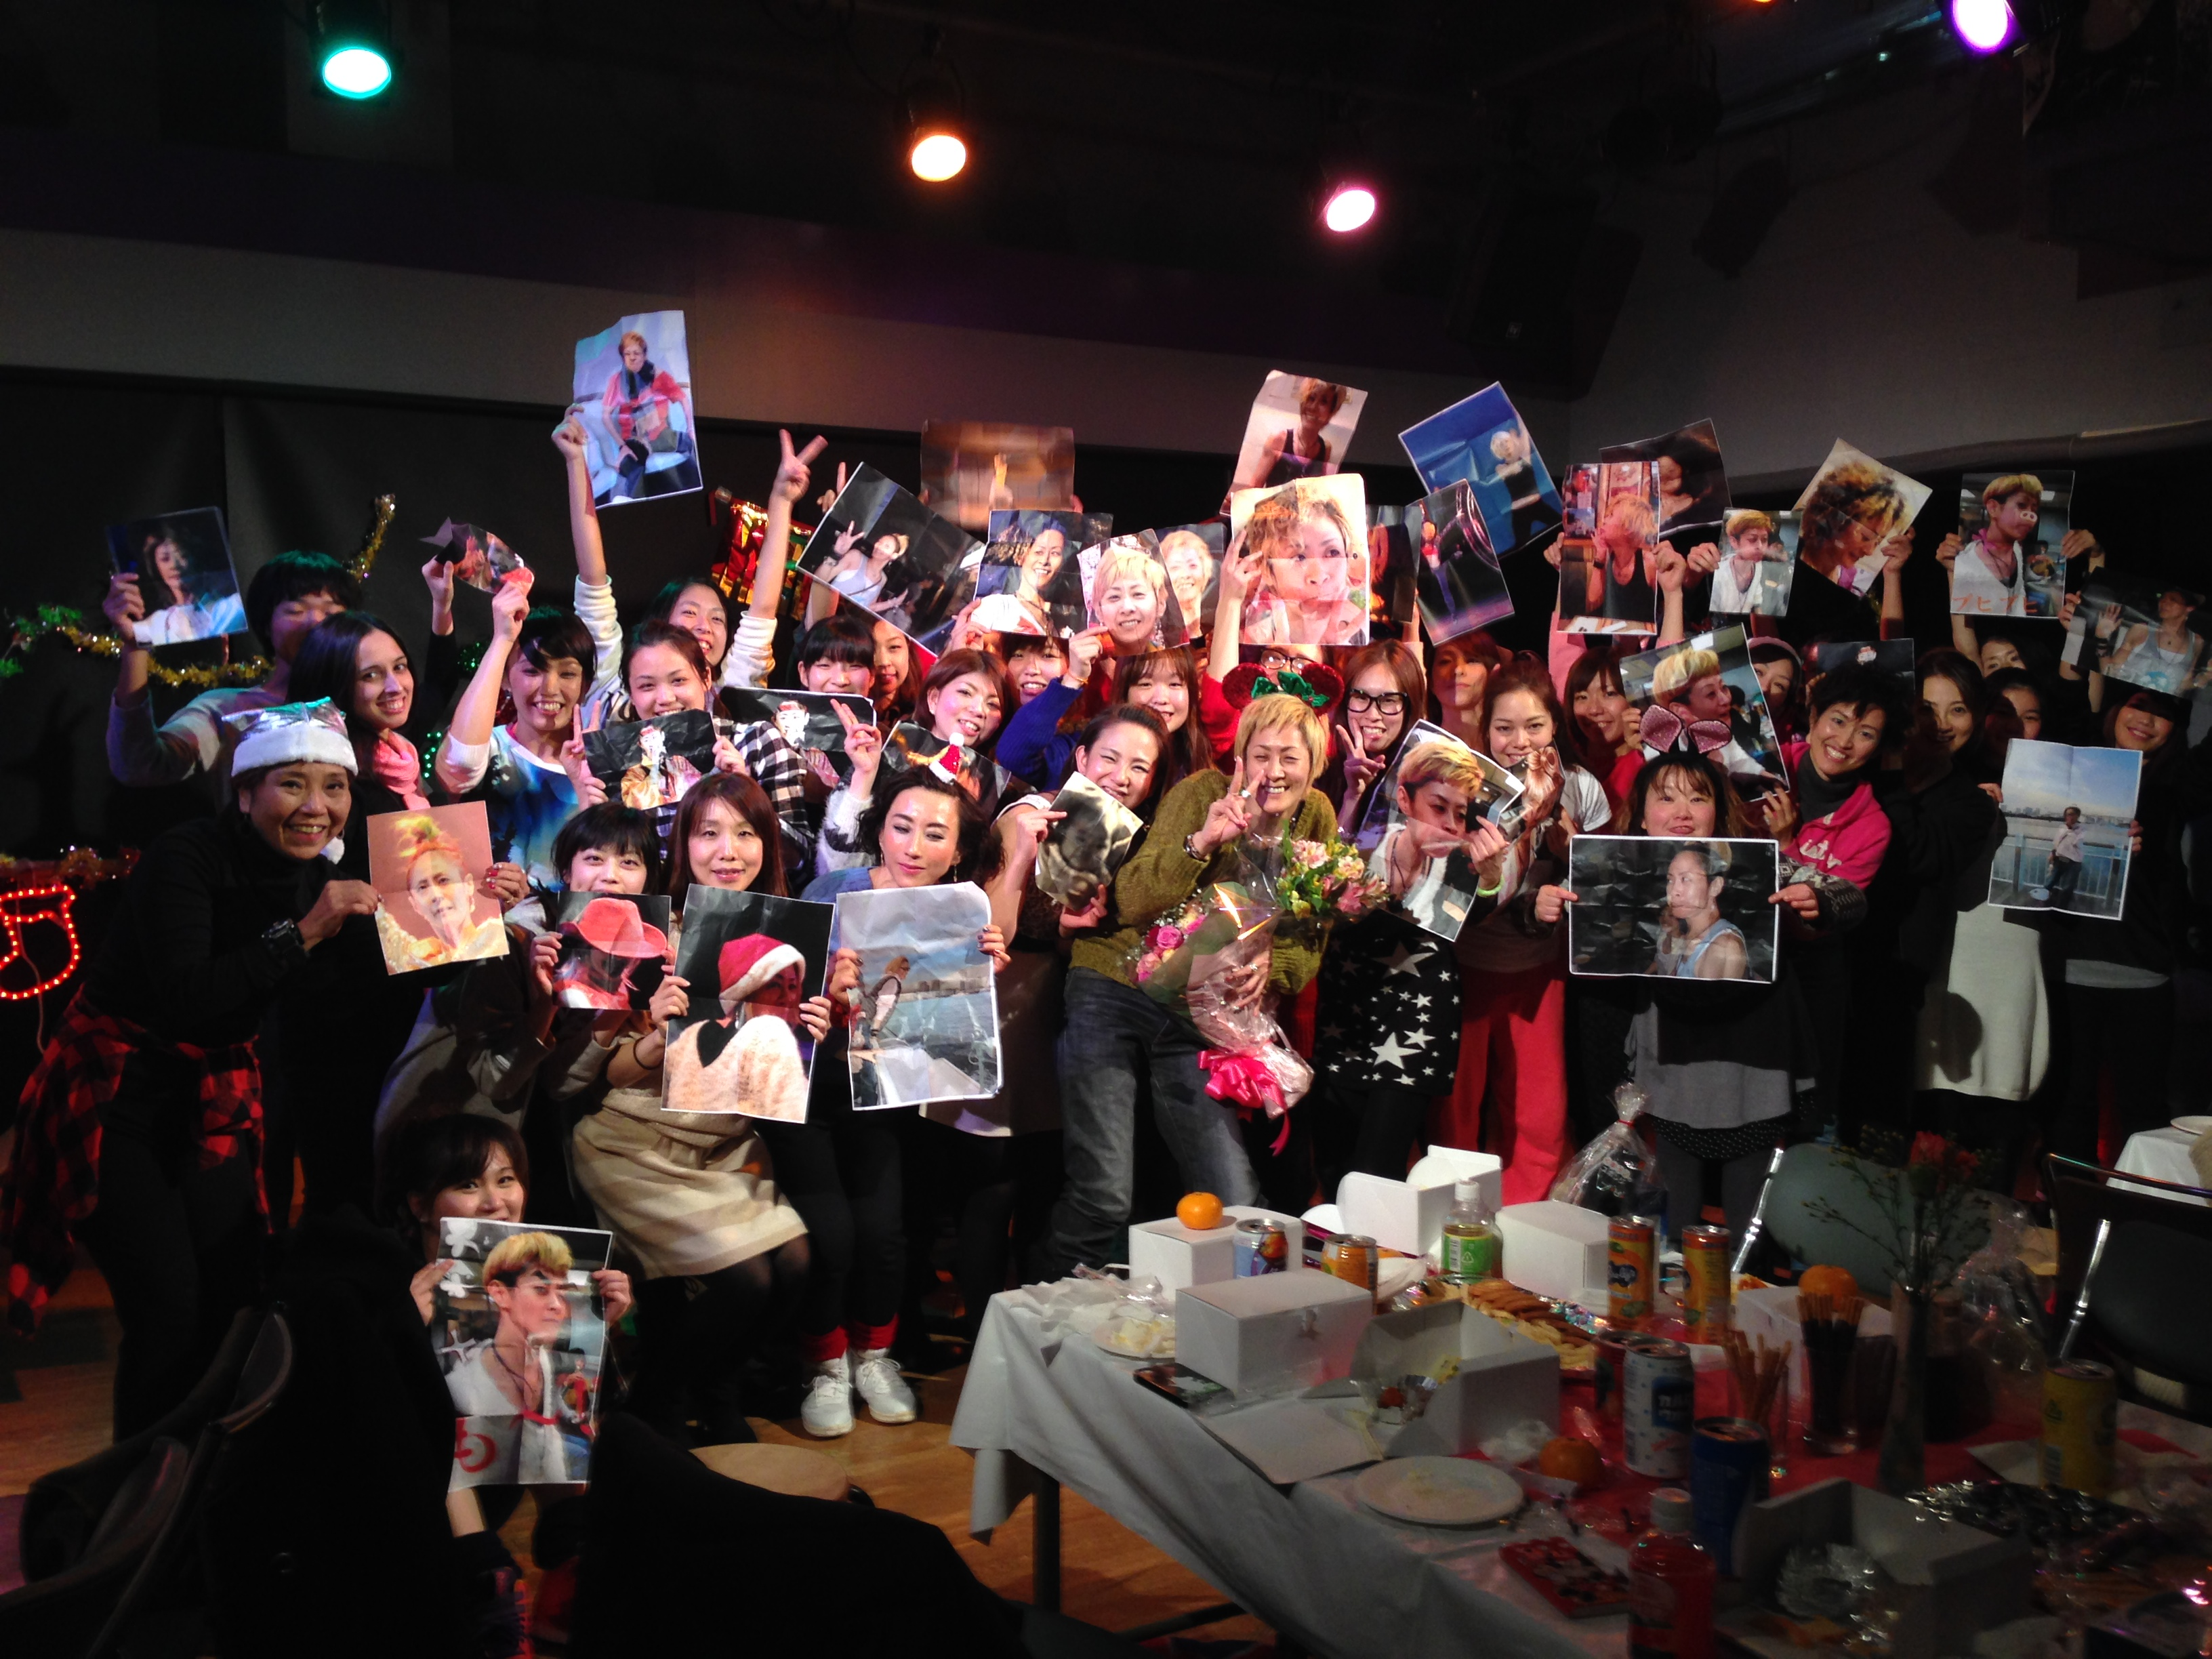 Toshimi birthday mob